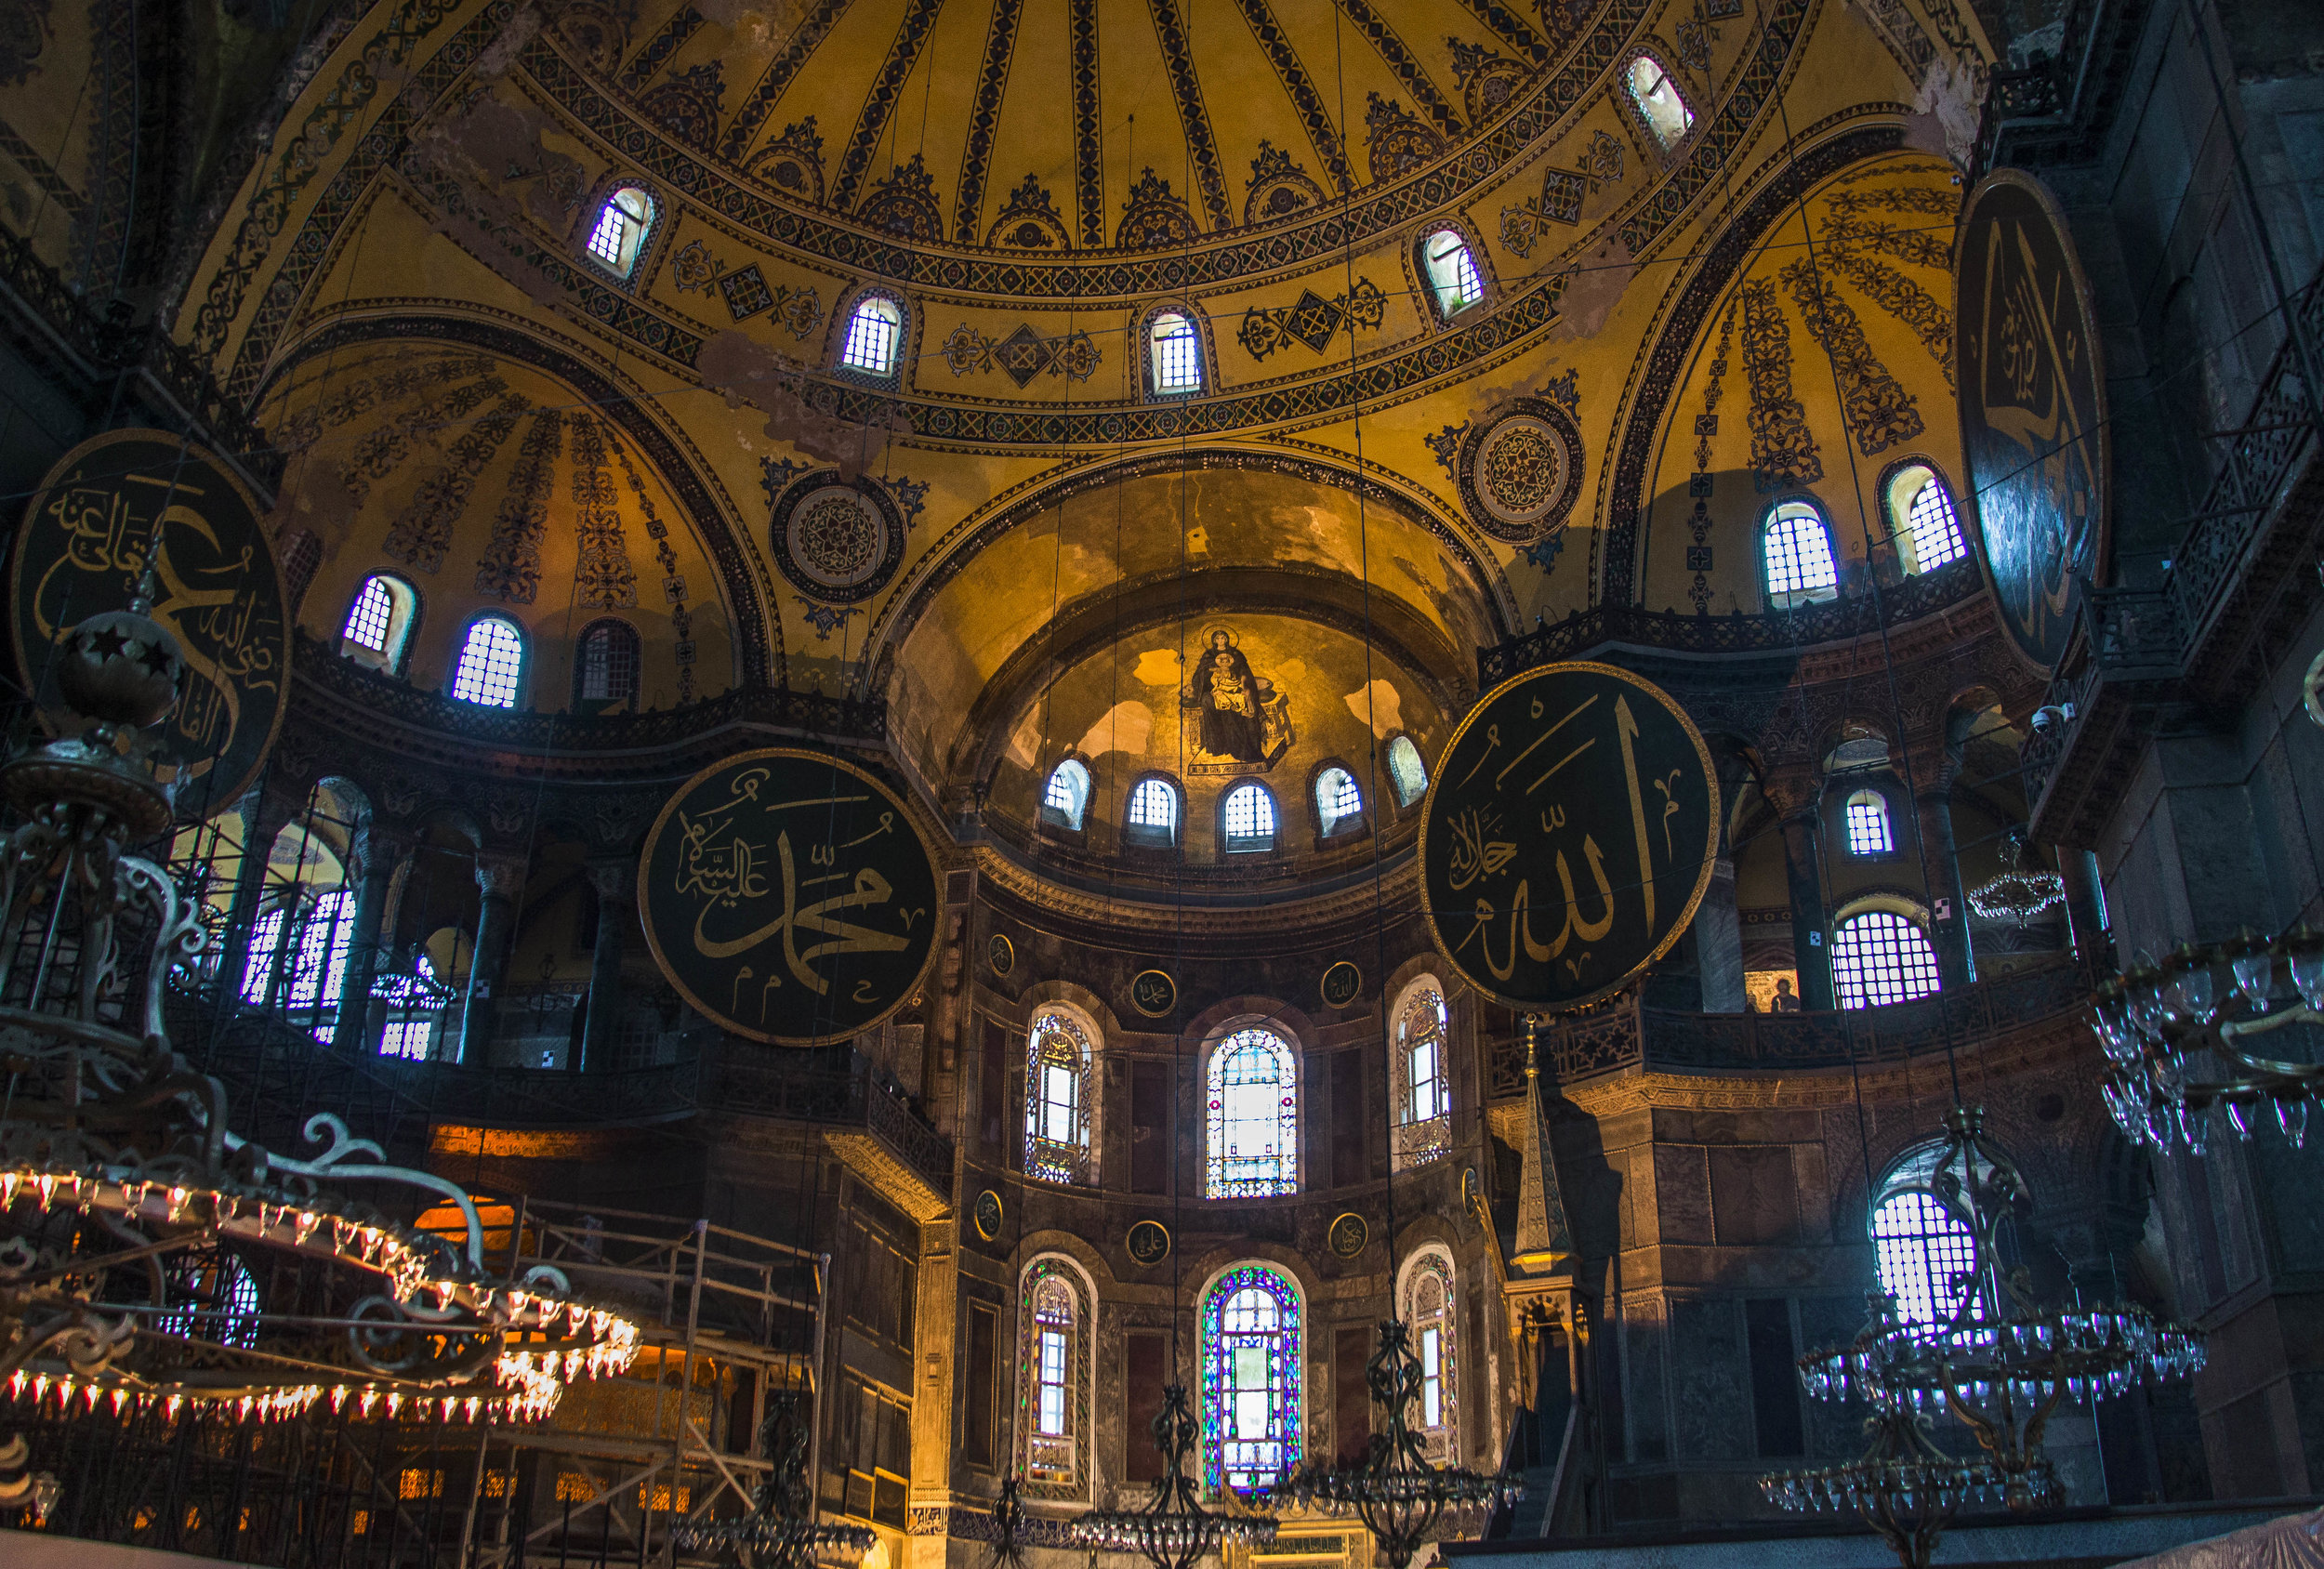 Hagia Sophia built in 537AD is a testament to the ever evolving history of Turkey first built by the Romans as a Christian cathedral before being converted into a mosque after the Ottoman's conquered the city.